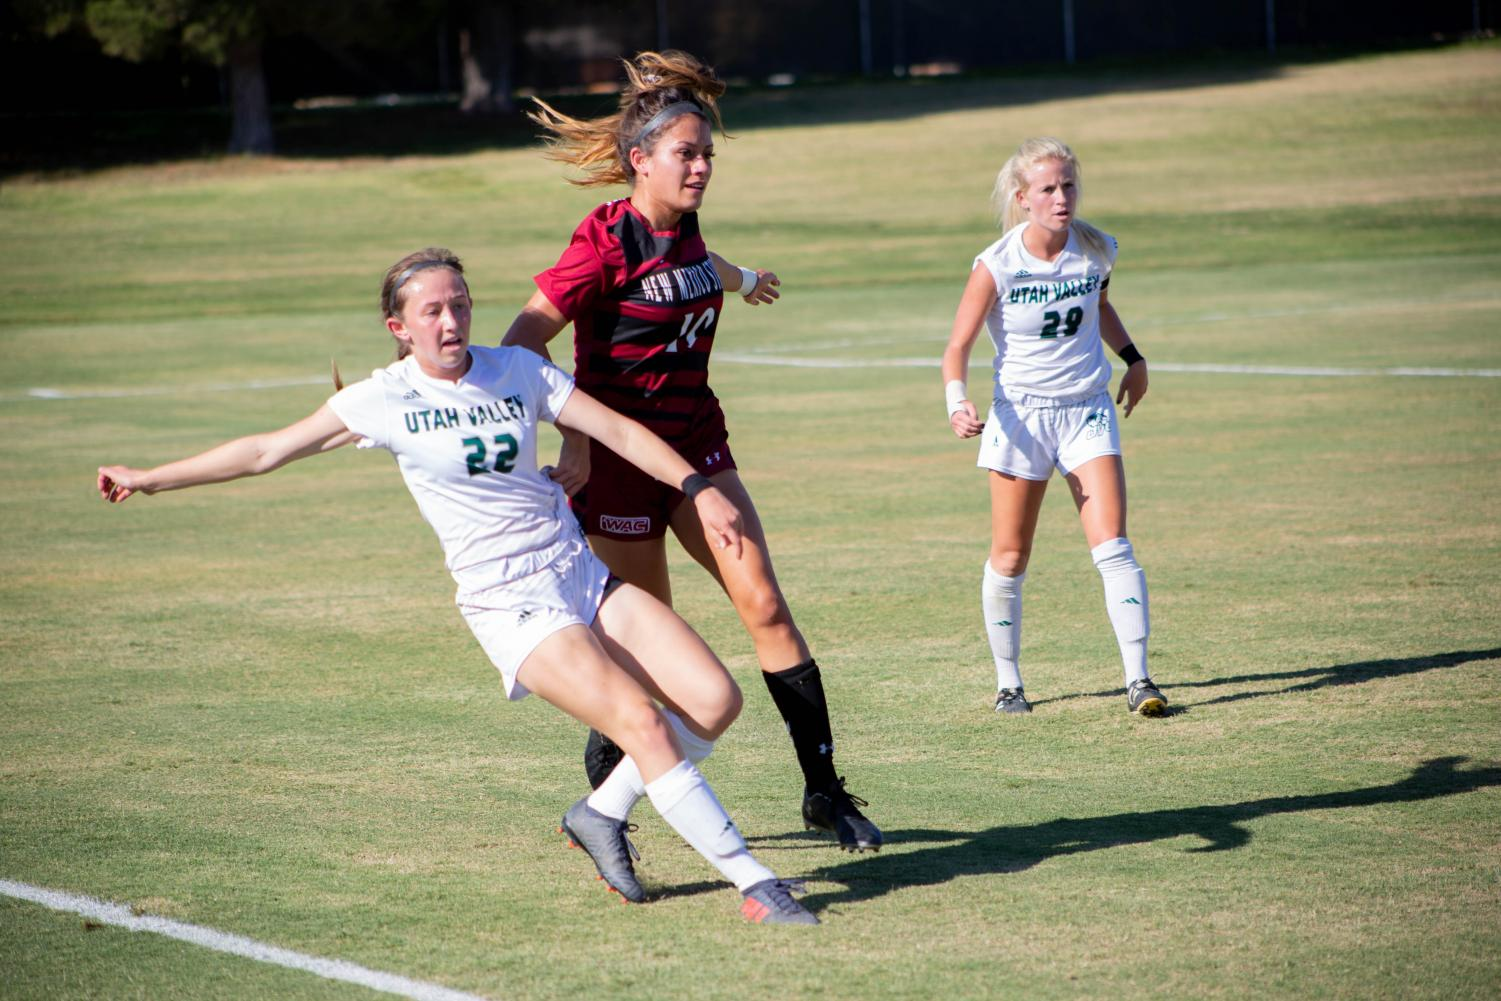 The New Mexico State women's soccer team couldn't score a goal in their conference opening loss at home Friday afternoon.